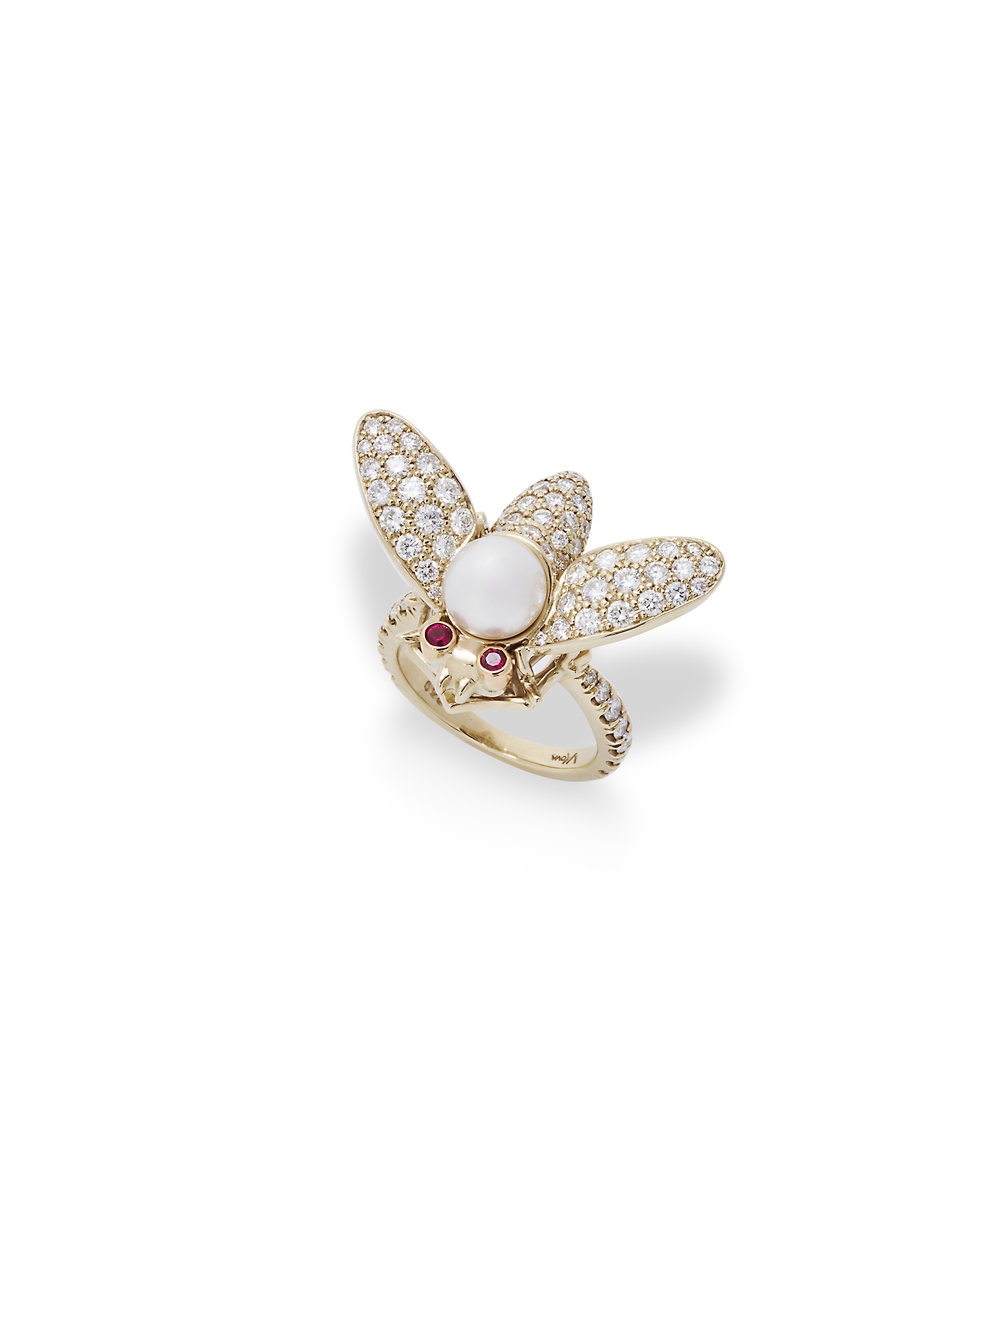 VALENTINA BUG RING   18K GOLD 2.0 CT OF DIAMONDS 0.16 CT OF RUBIES      Contact for inquiry